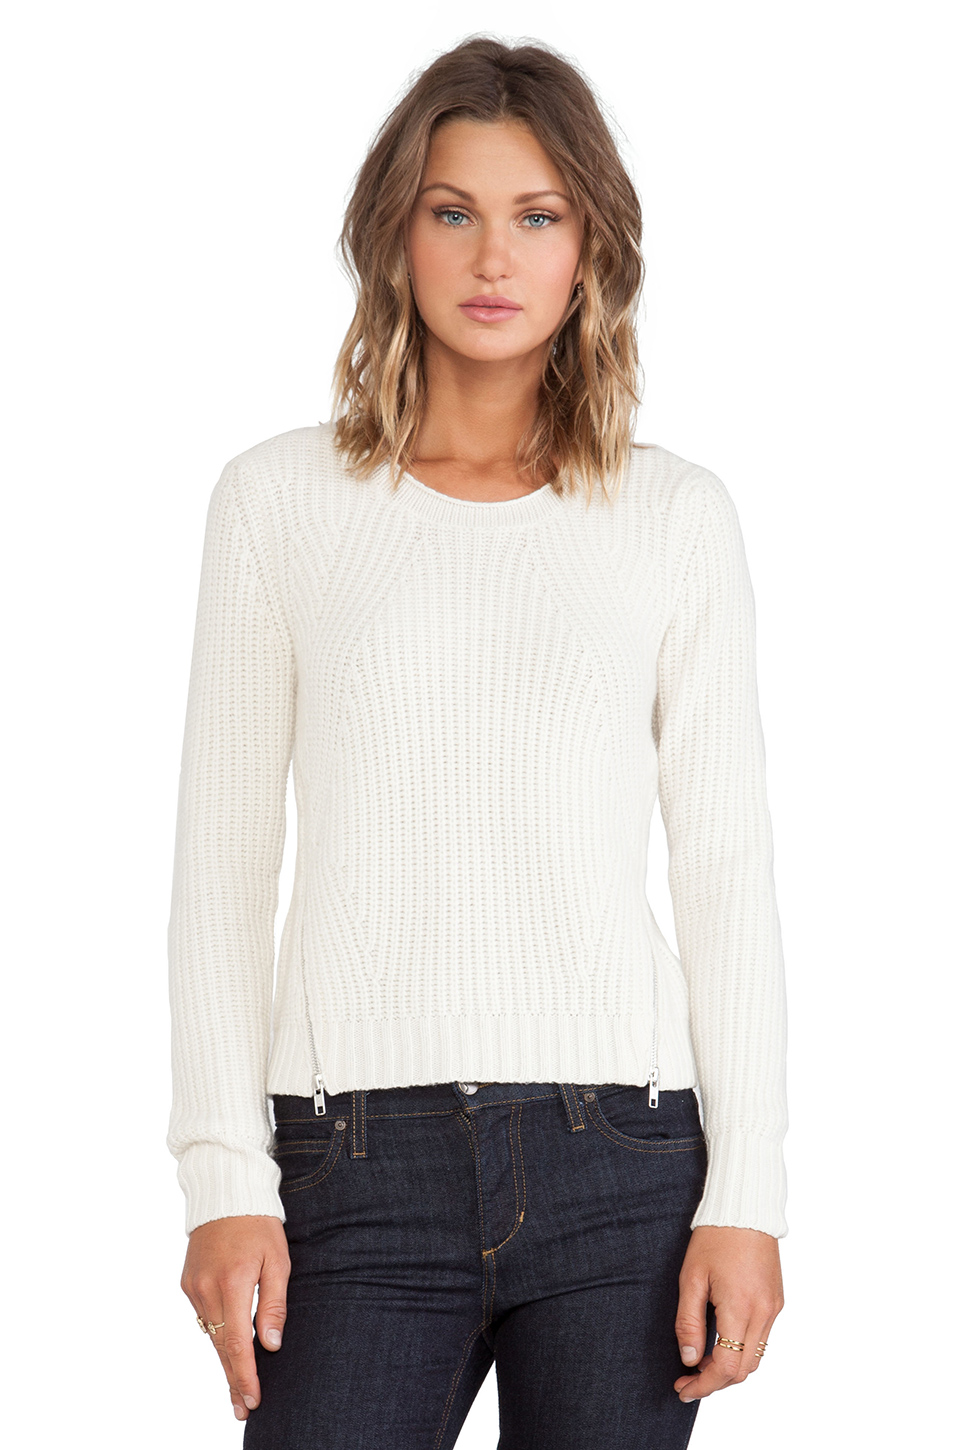 Autumn cashmere shaker stitch sweater in winter white from revolveclothing.com